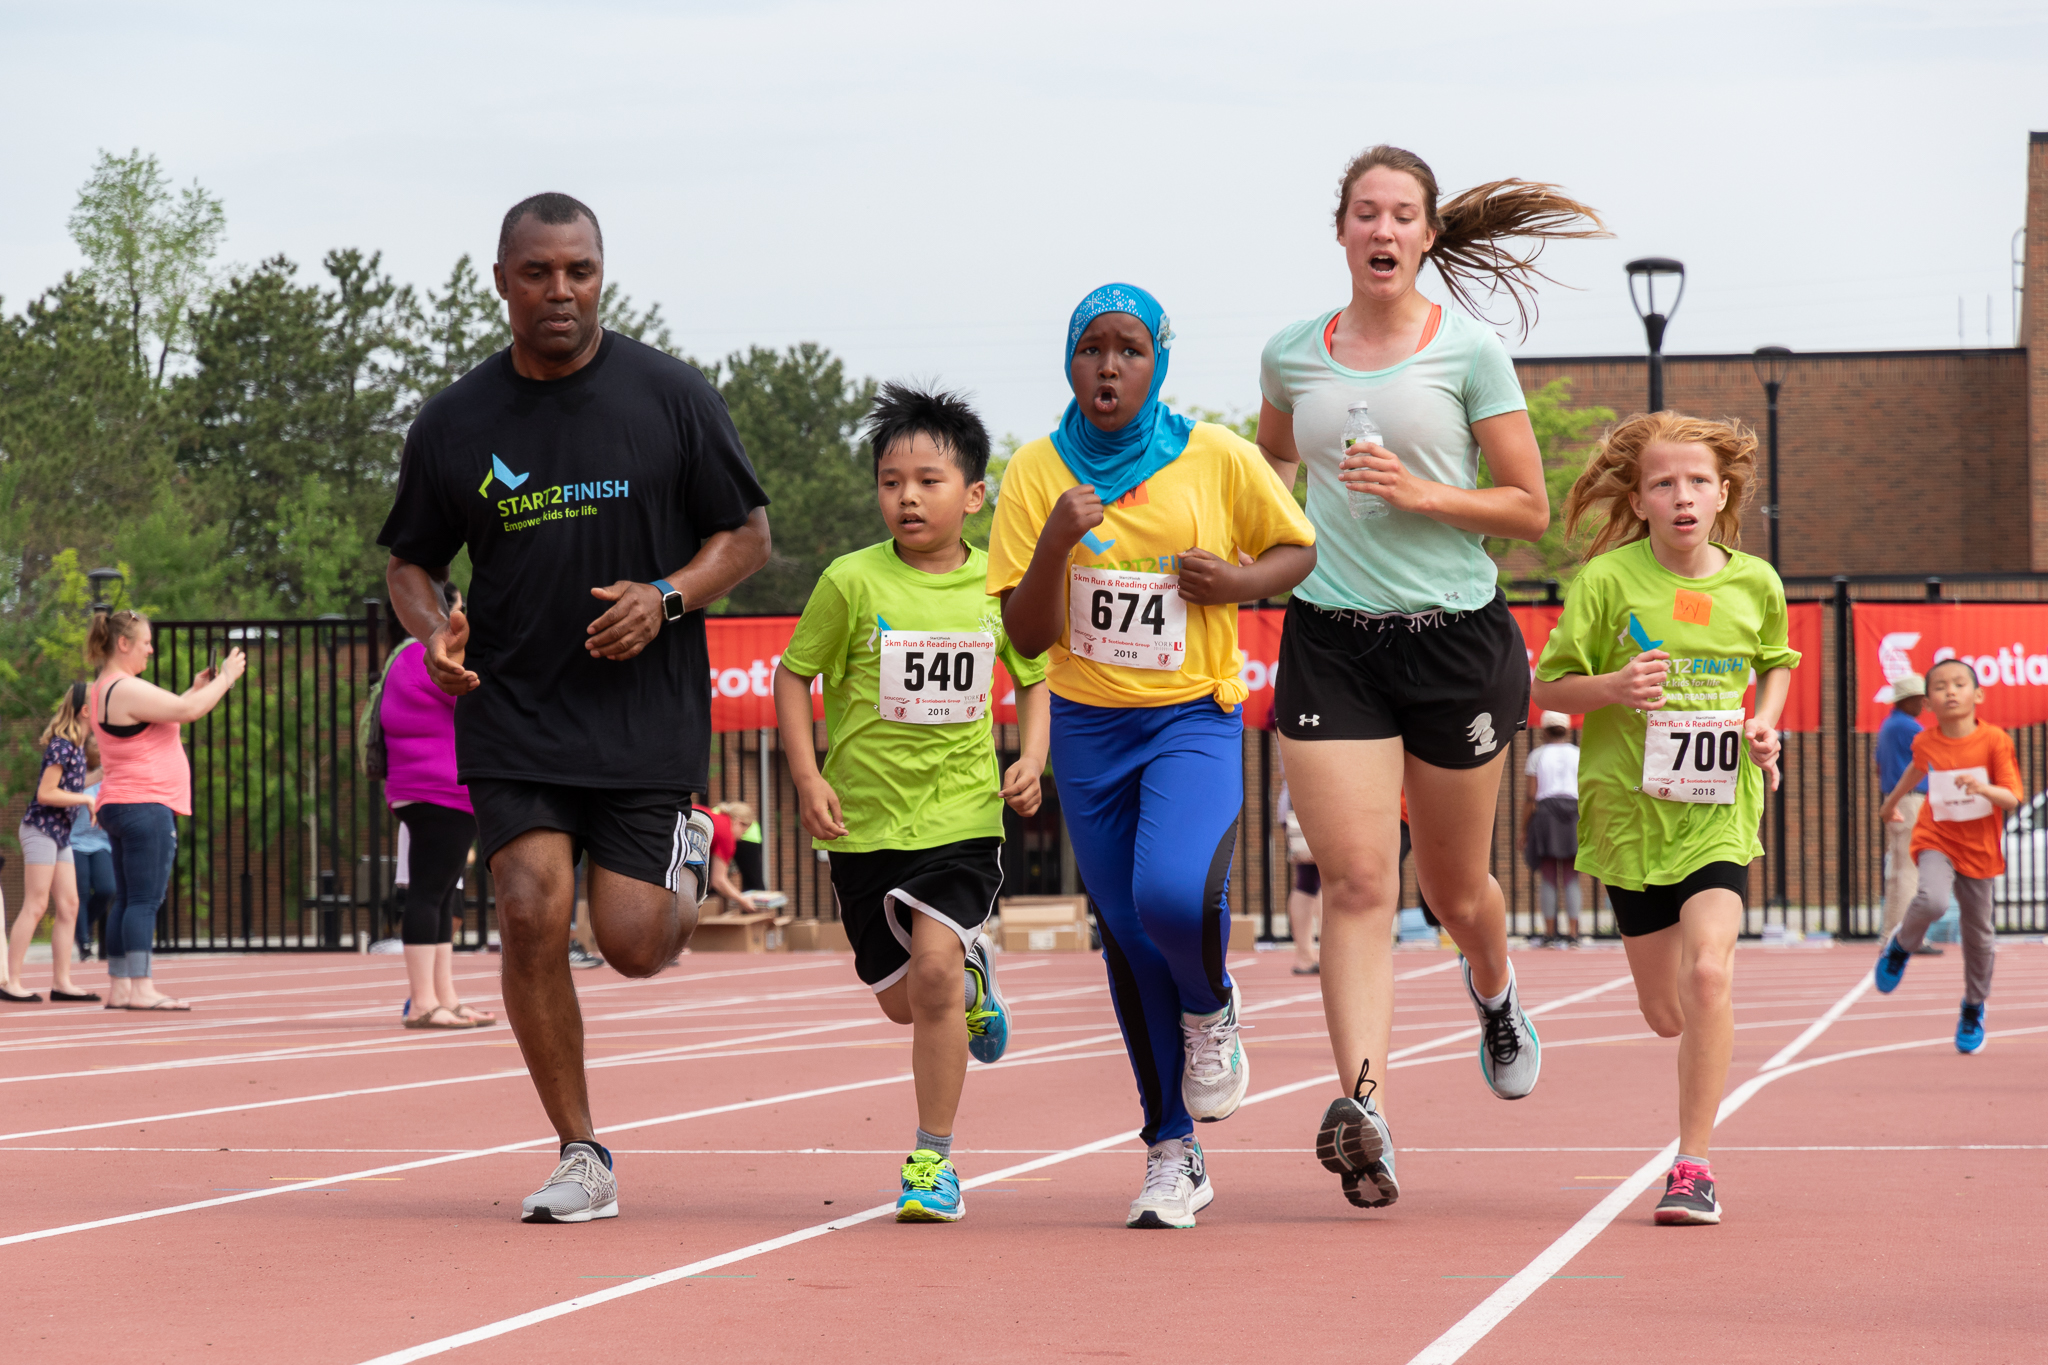 fun_run_children_finishline.JPG